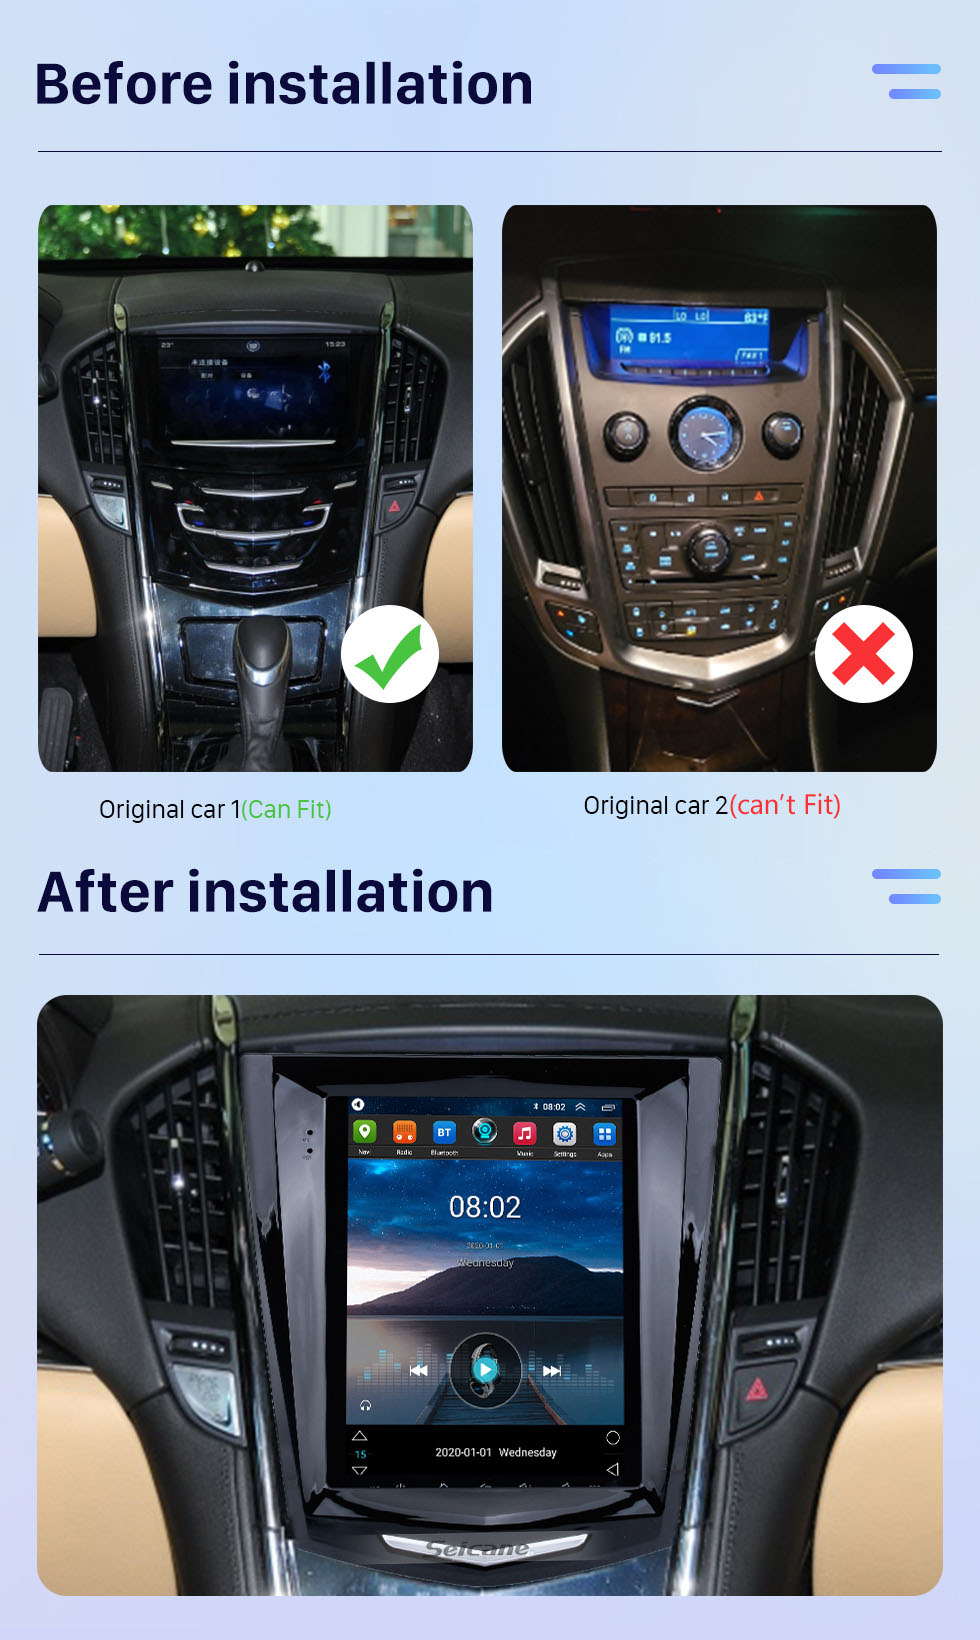 Seicane 9.7 inch HD Touchscreen Android 10.0 car Stereo for Cadillac ATS XTS ATSL SRX CTS 2011-2019 Navigation system BT Wifi Mirror Link USB support DVD Player Carplay 4G